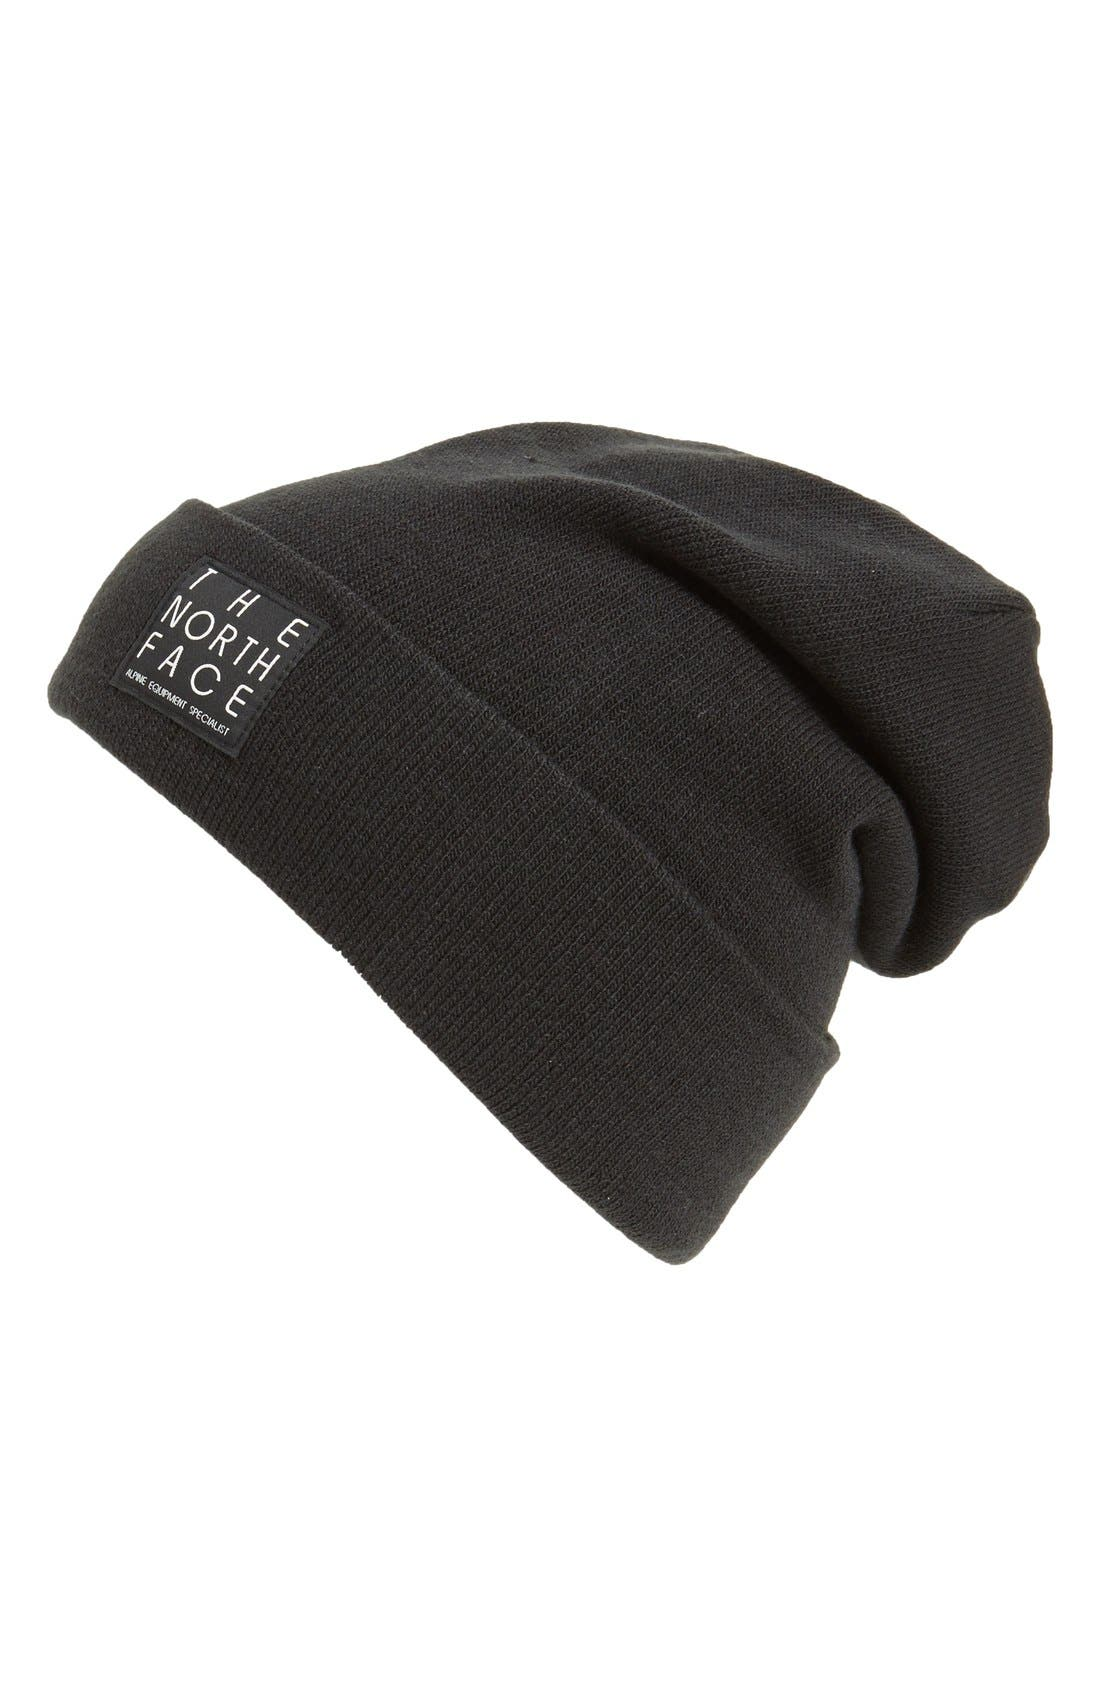 'Dock Worker' Beanie,                             Main thumbnail 1, color,                             001